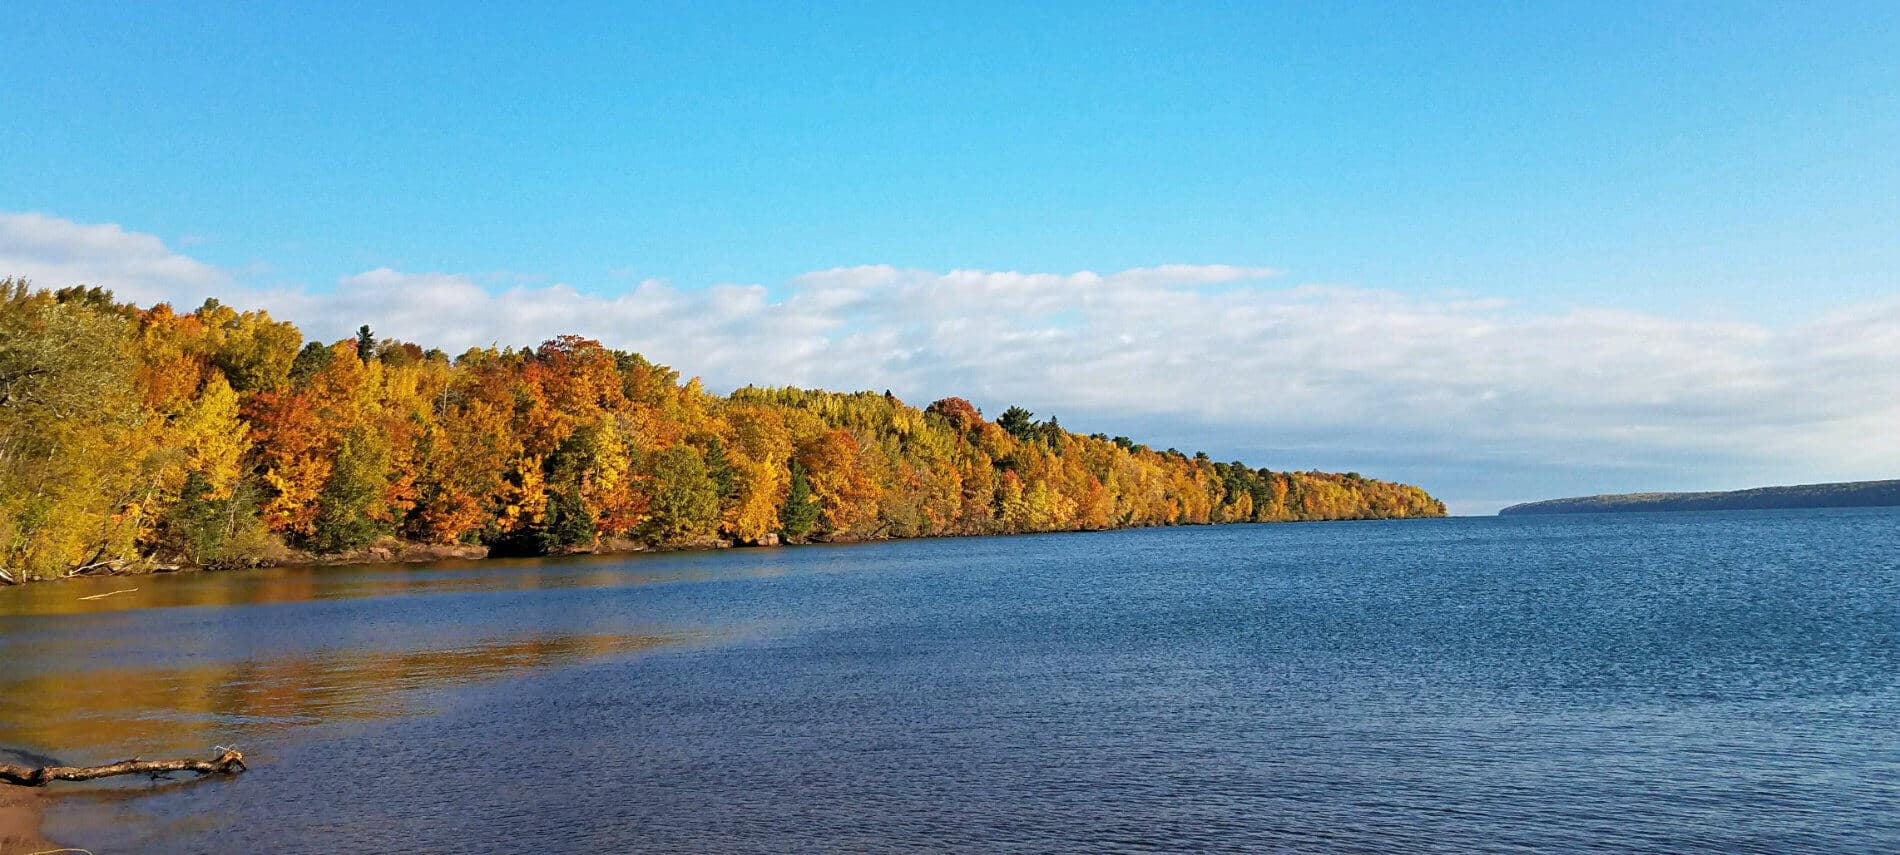 Blue water of Lake Superior bordered by fall colored trees and blue sky